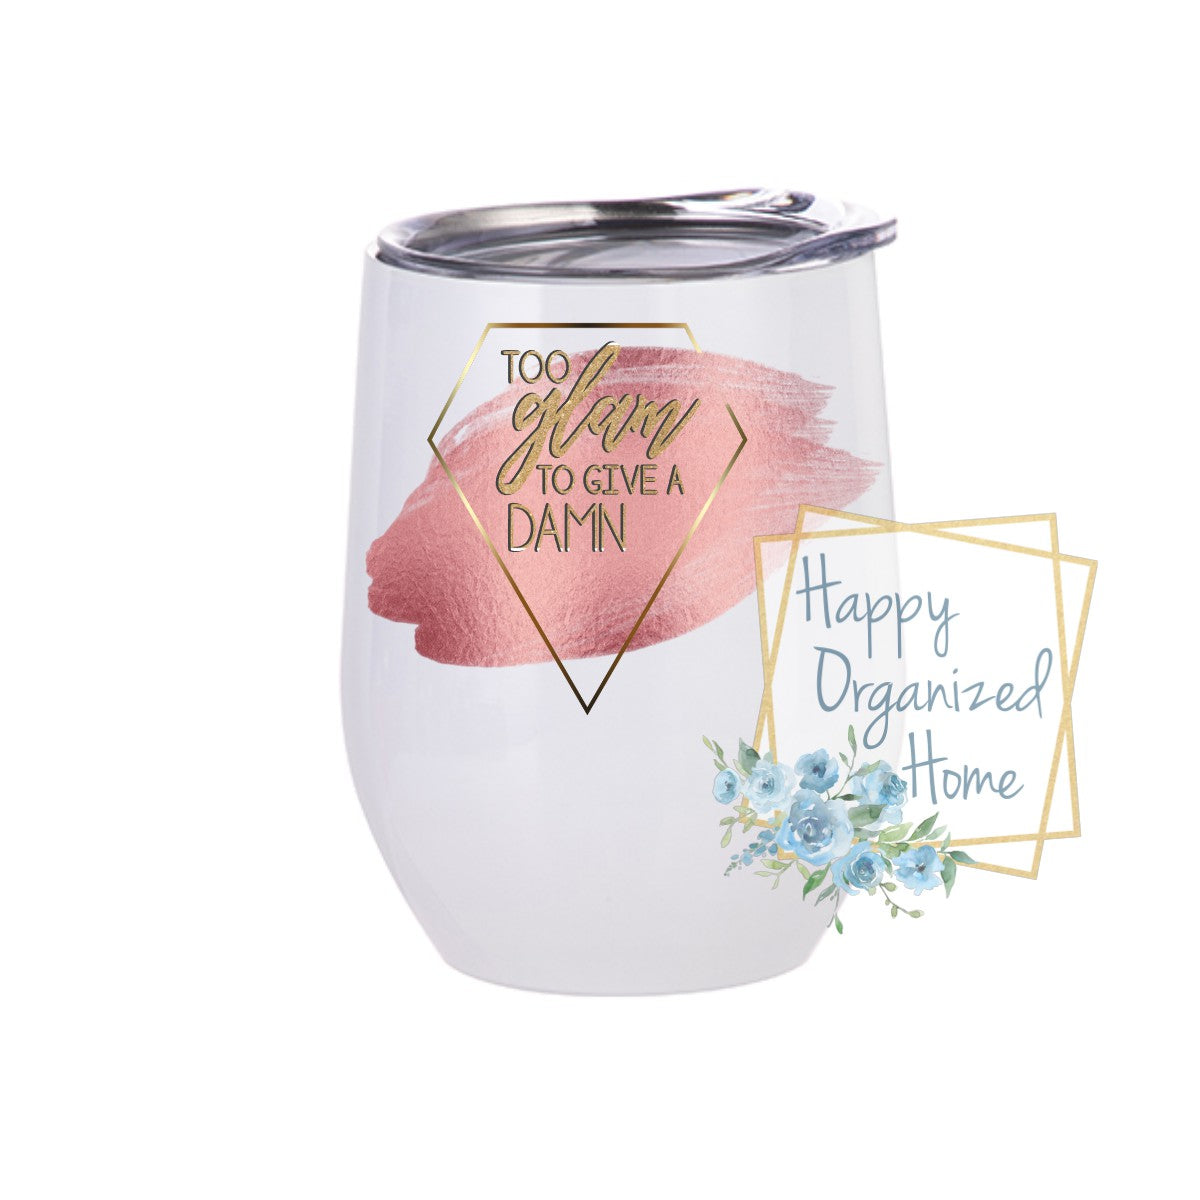 Too Glam to give a damn - Insulated Wine Tumbler